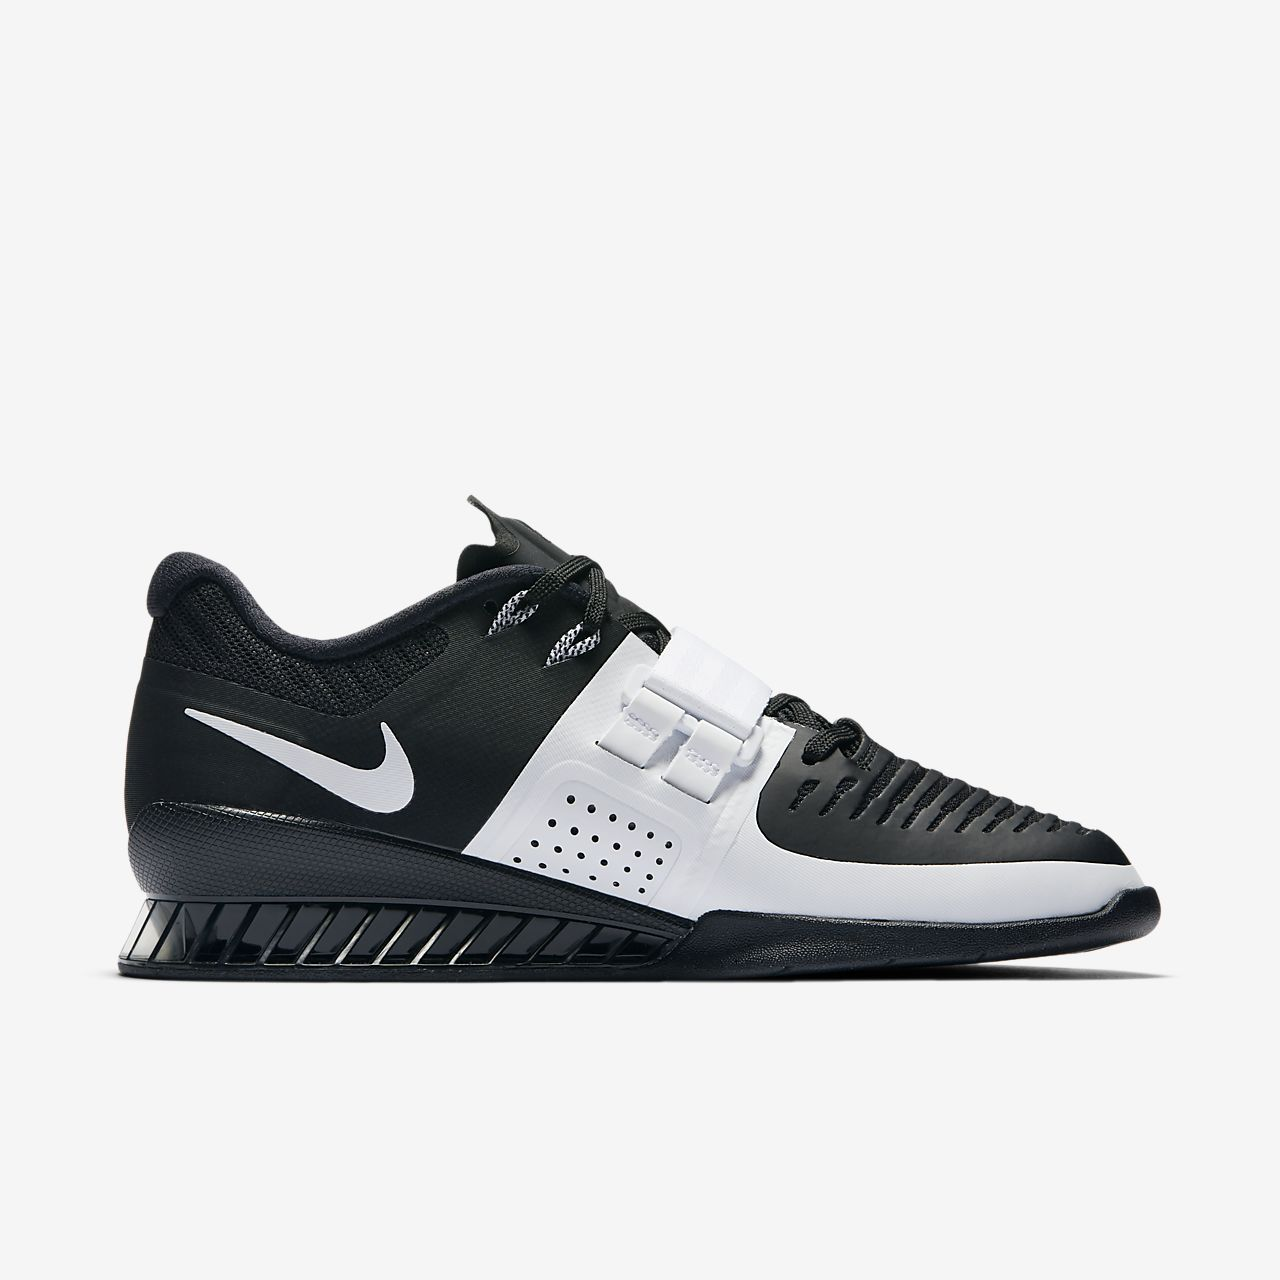 ... Nike Romaleos 3 Women's Weightlifting Shoe